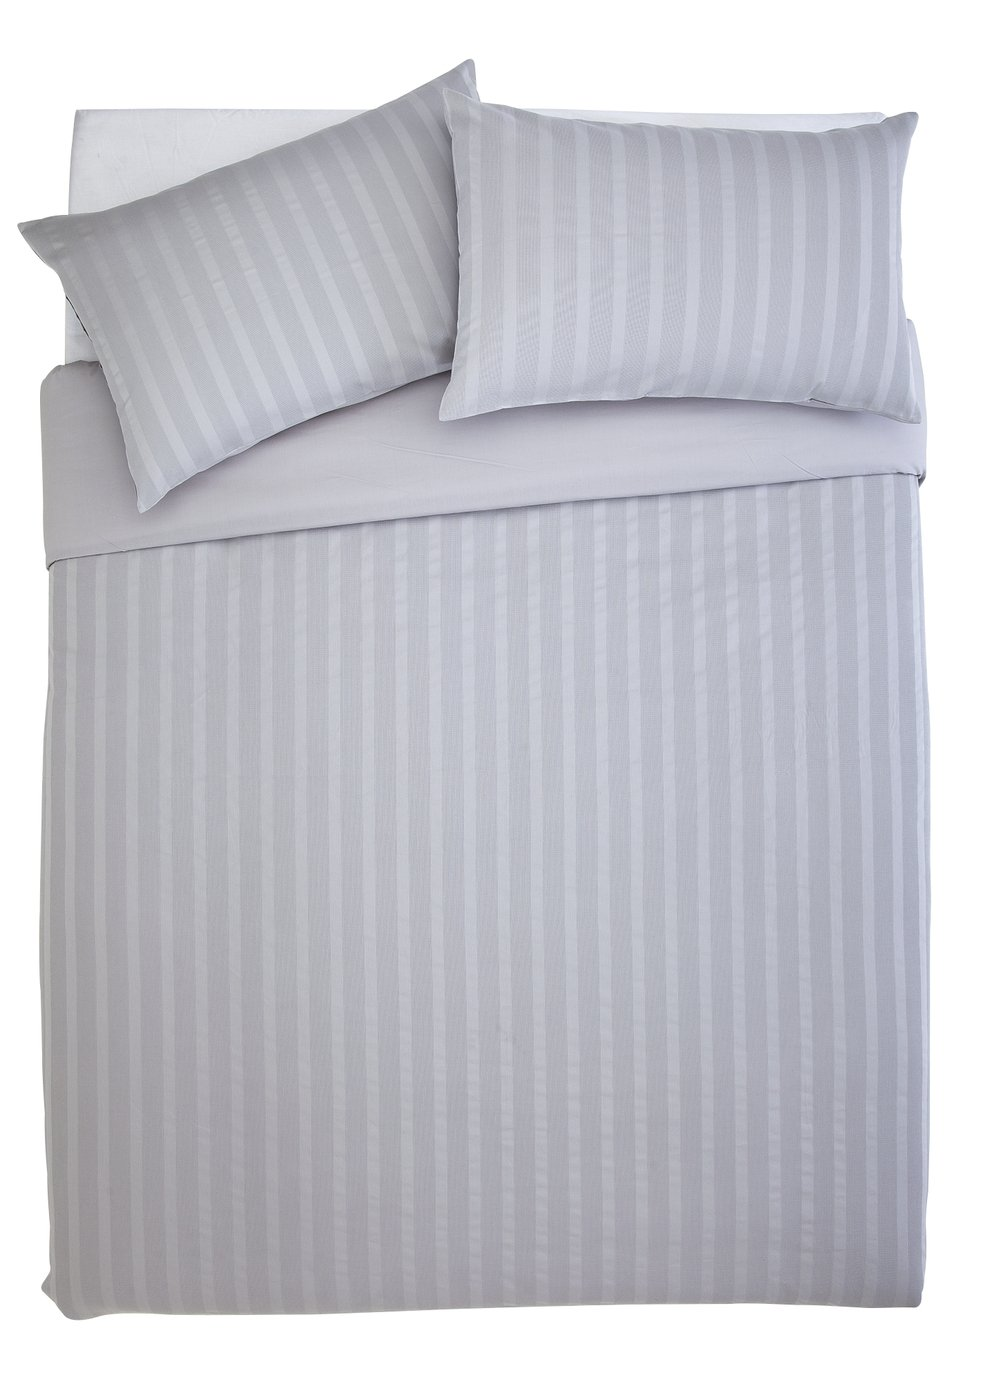 Sainsbury's Home 300TC Grey Waffle Bedding Set - Kingsize